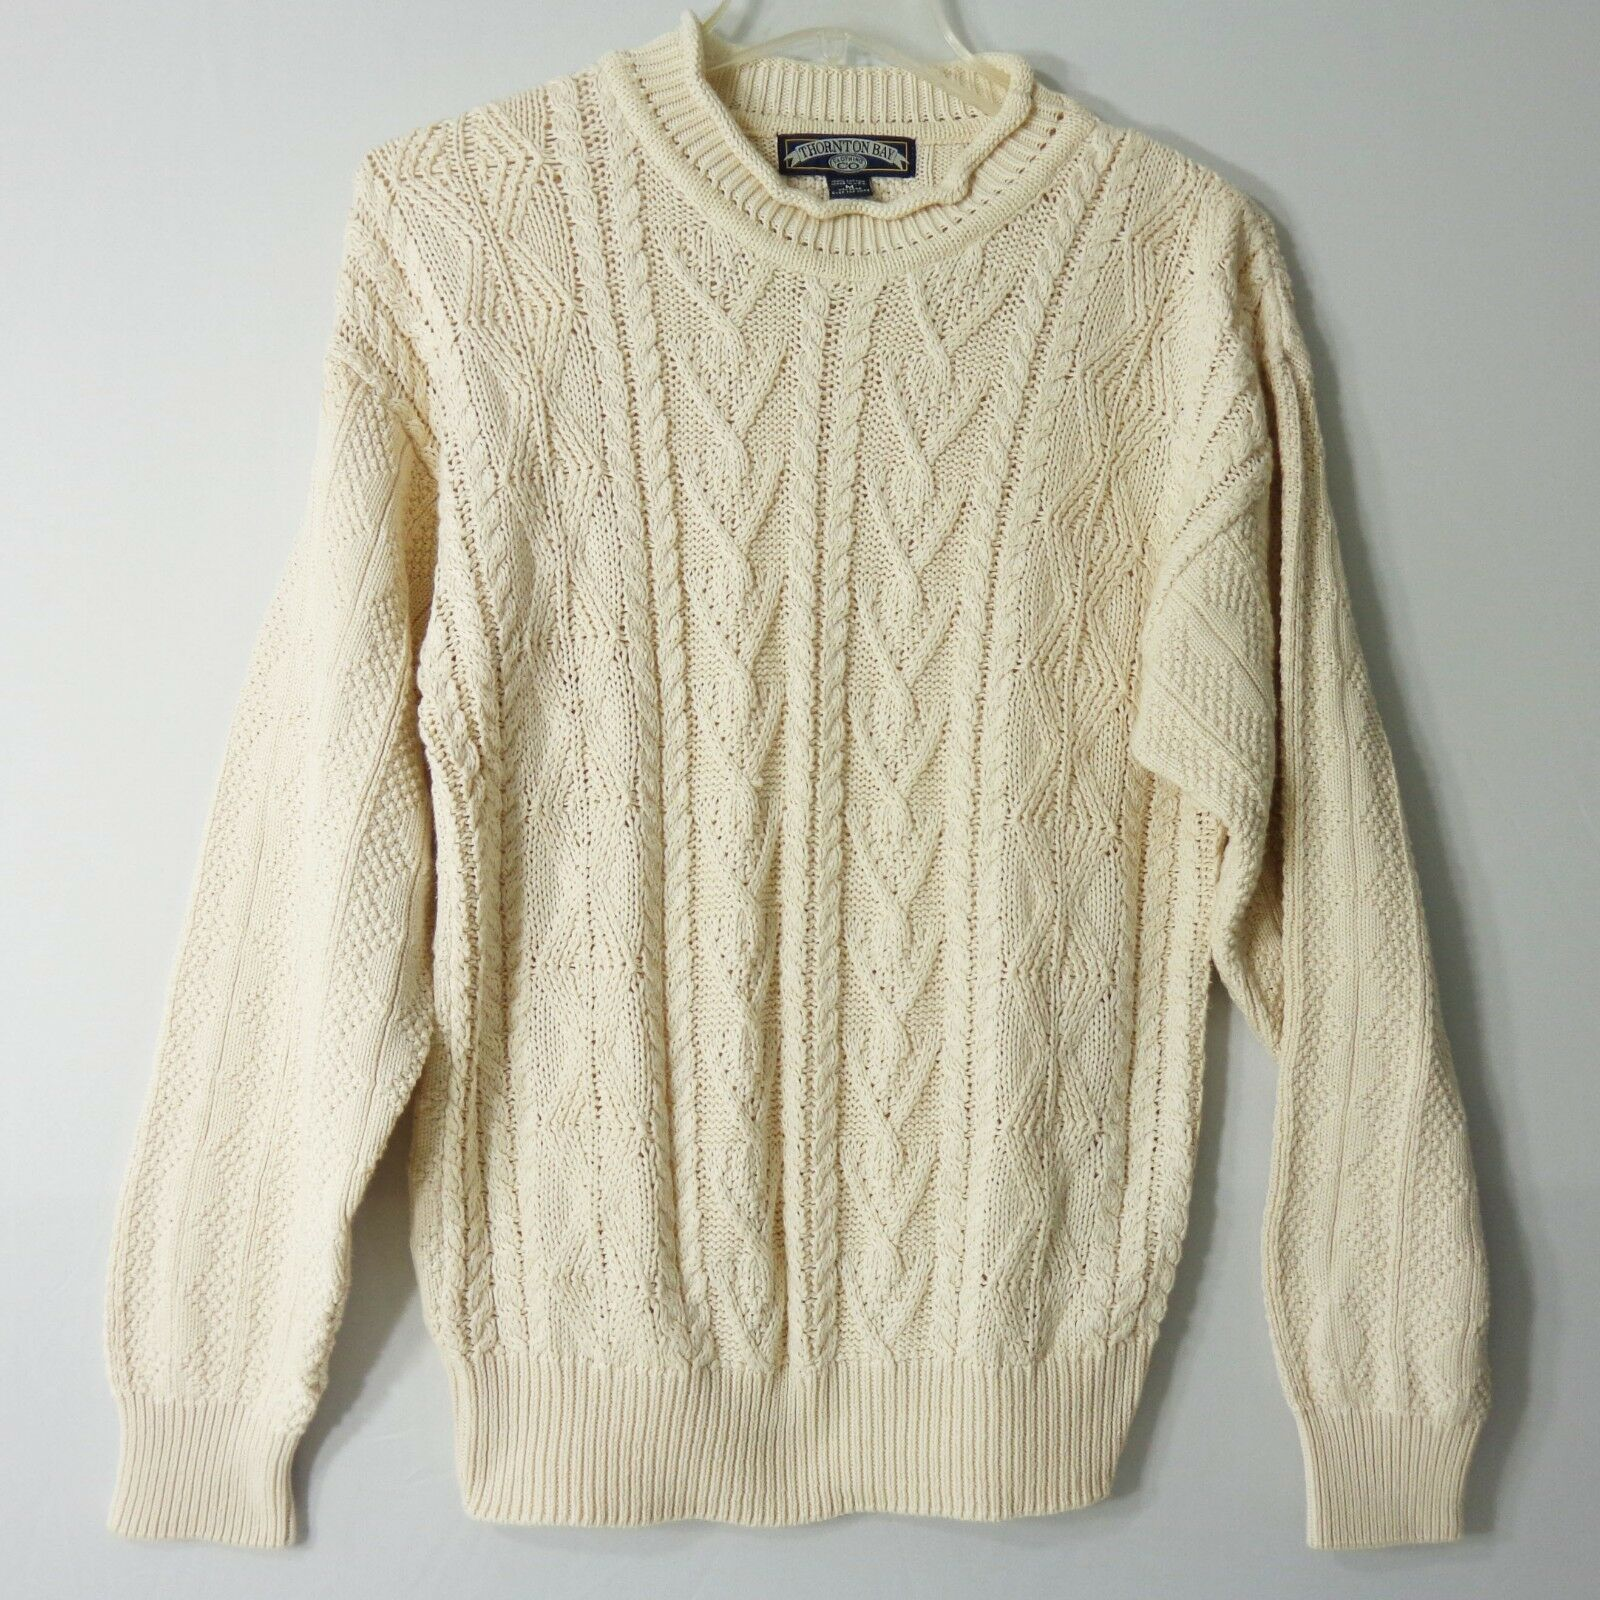 Thornton Bay Vintage Mens Medium Sweater Knitted Cable Fisherman Ivory Made USA